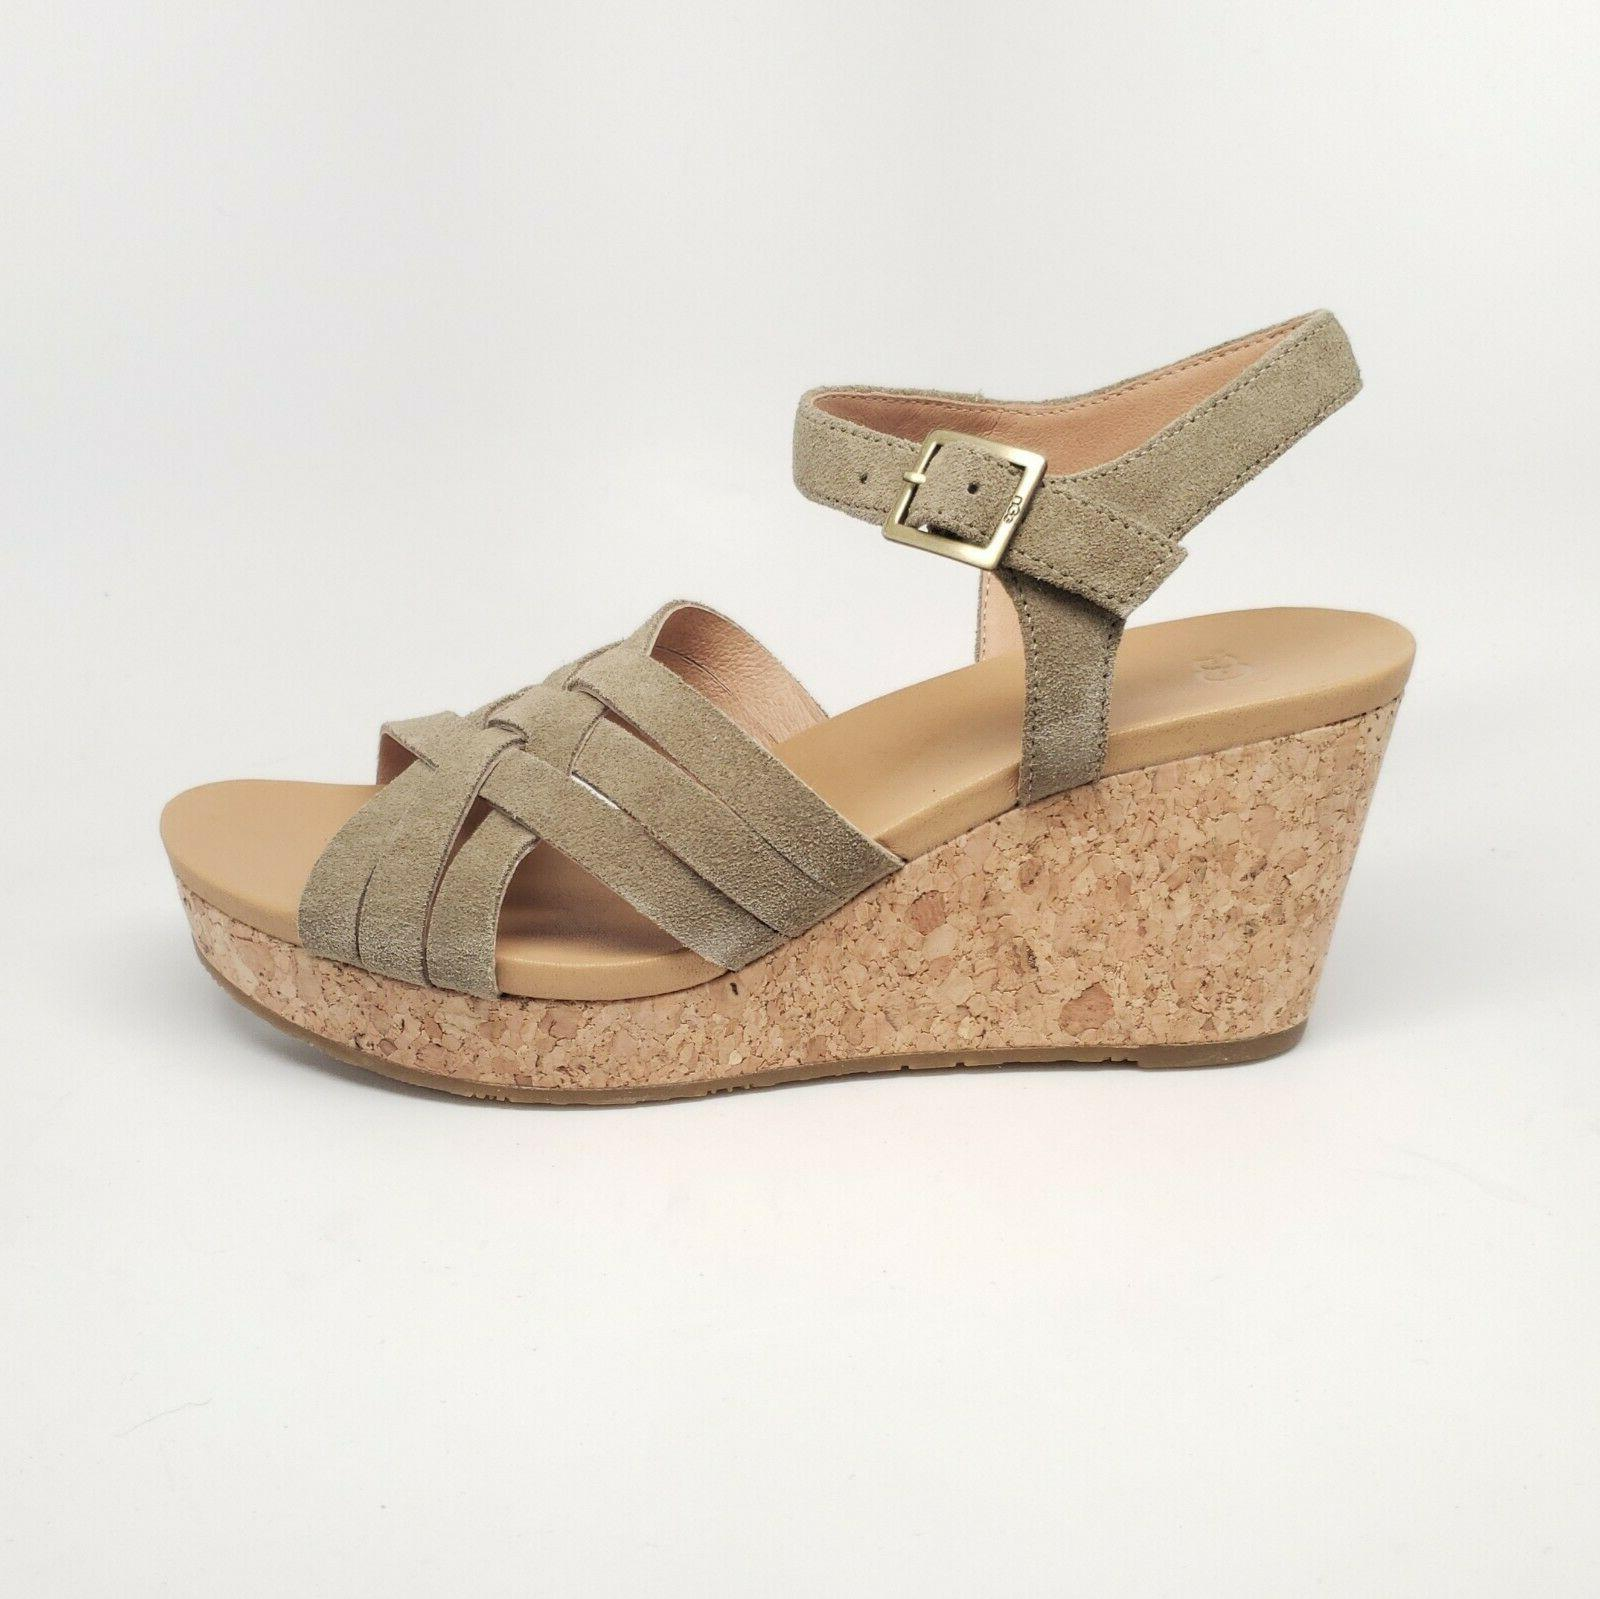 uma wedge womens suede cork wedge sandal